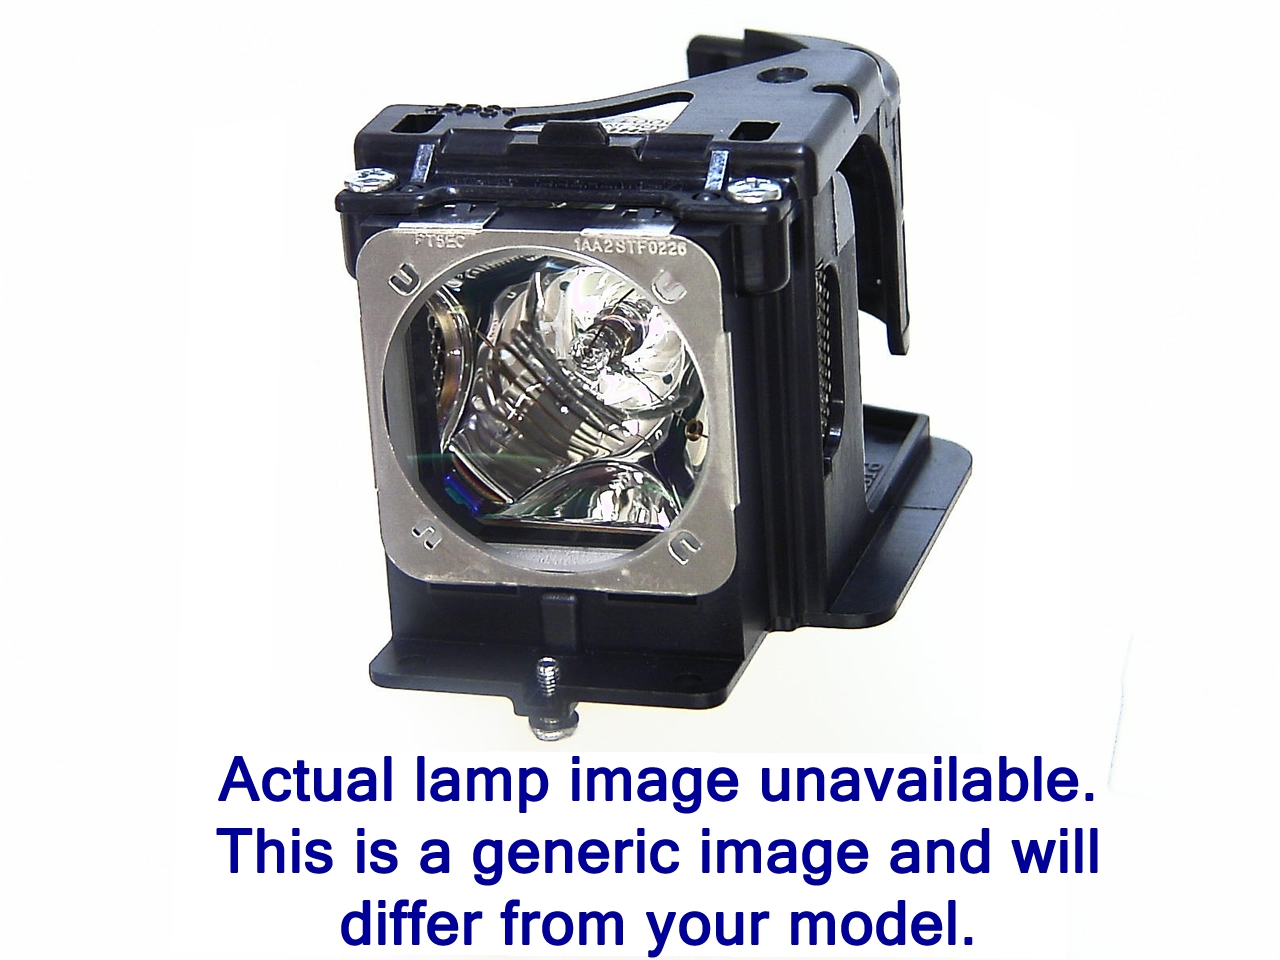 Christie 03-900519-01P / 003-120135-01 Projector Replacement Lamp